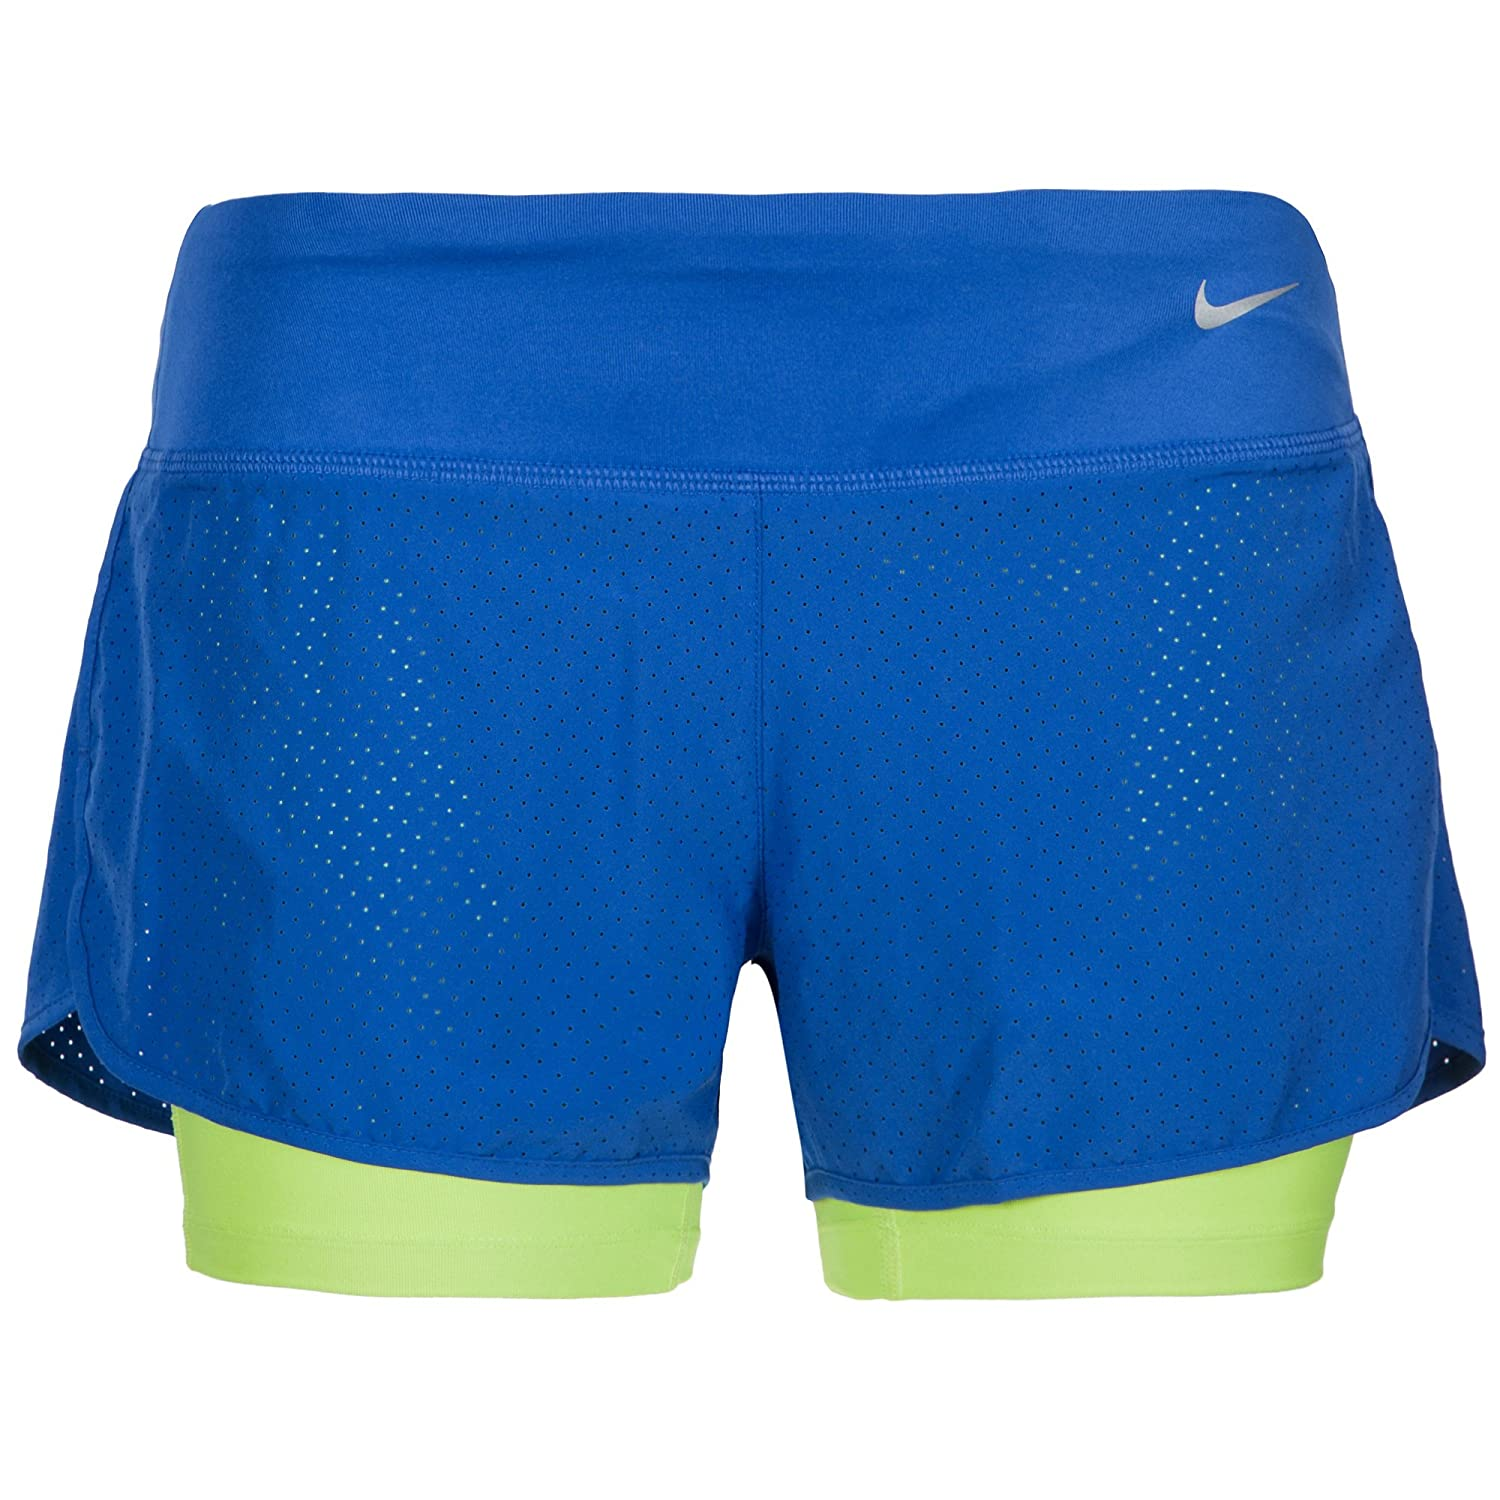 Nike Women's Dri-FIT Stay Cool 2- in - 1 Running Shorts Size M Blue/Lime Green